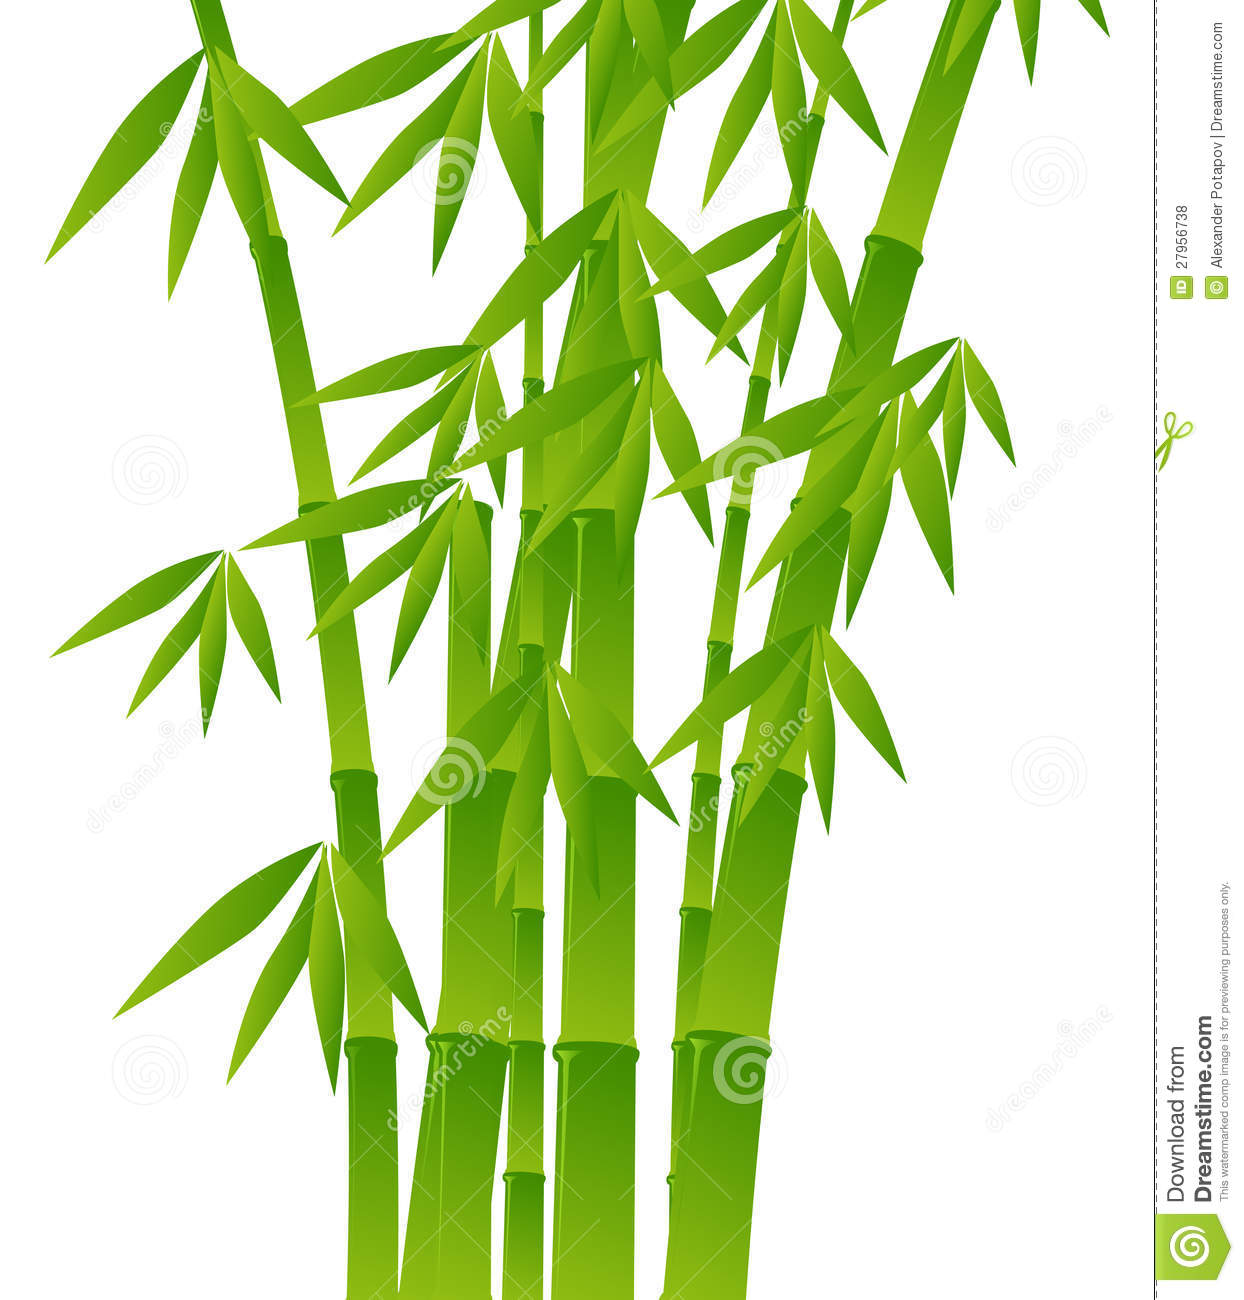 Clipart bamboo trees graphic library Bamboo tree clipart 5 » Clipart Station graphic library